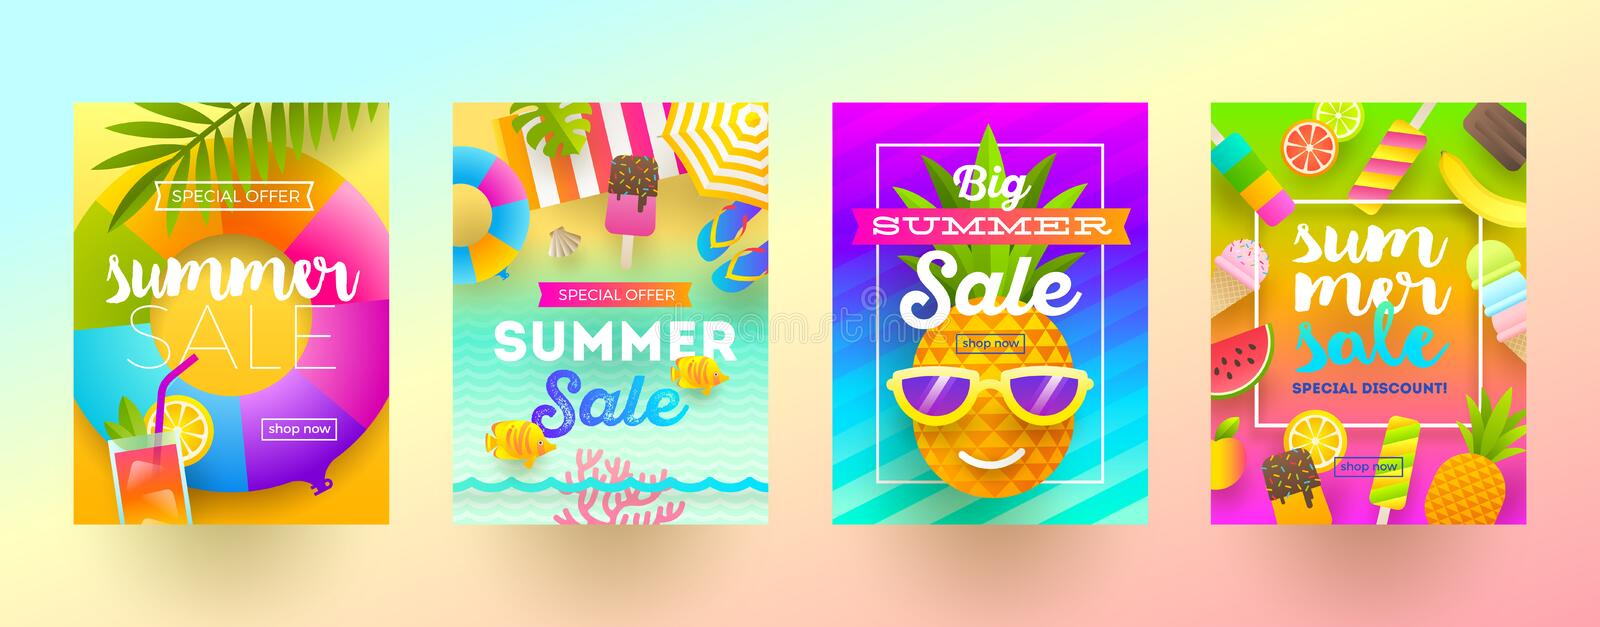 Set of summer sale promotion banners. Vacation, holidays and travel colorful bright background. Poster or newsletter design. Vector illustration royalty free illustration